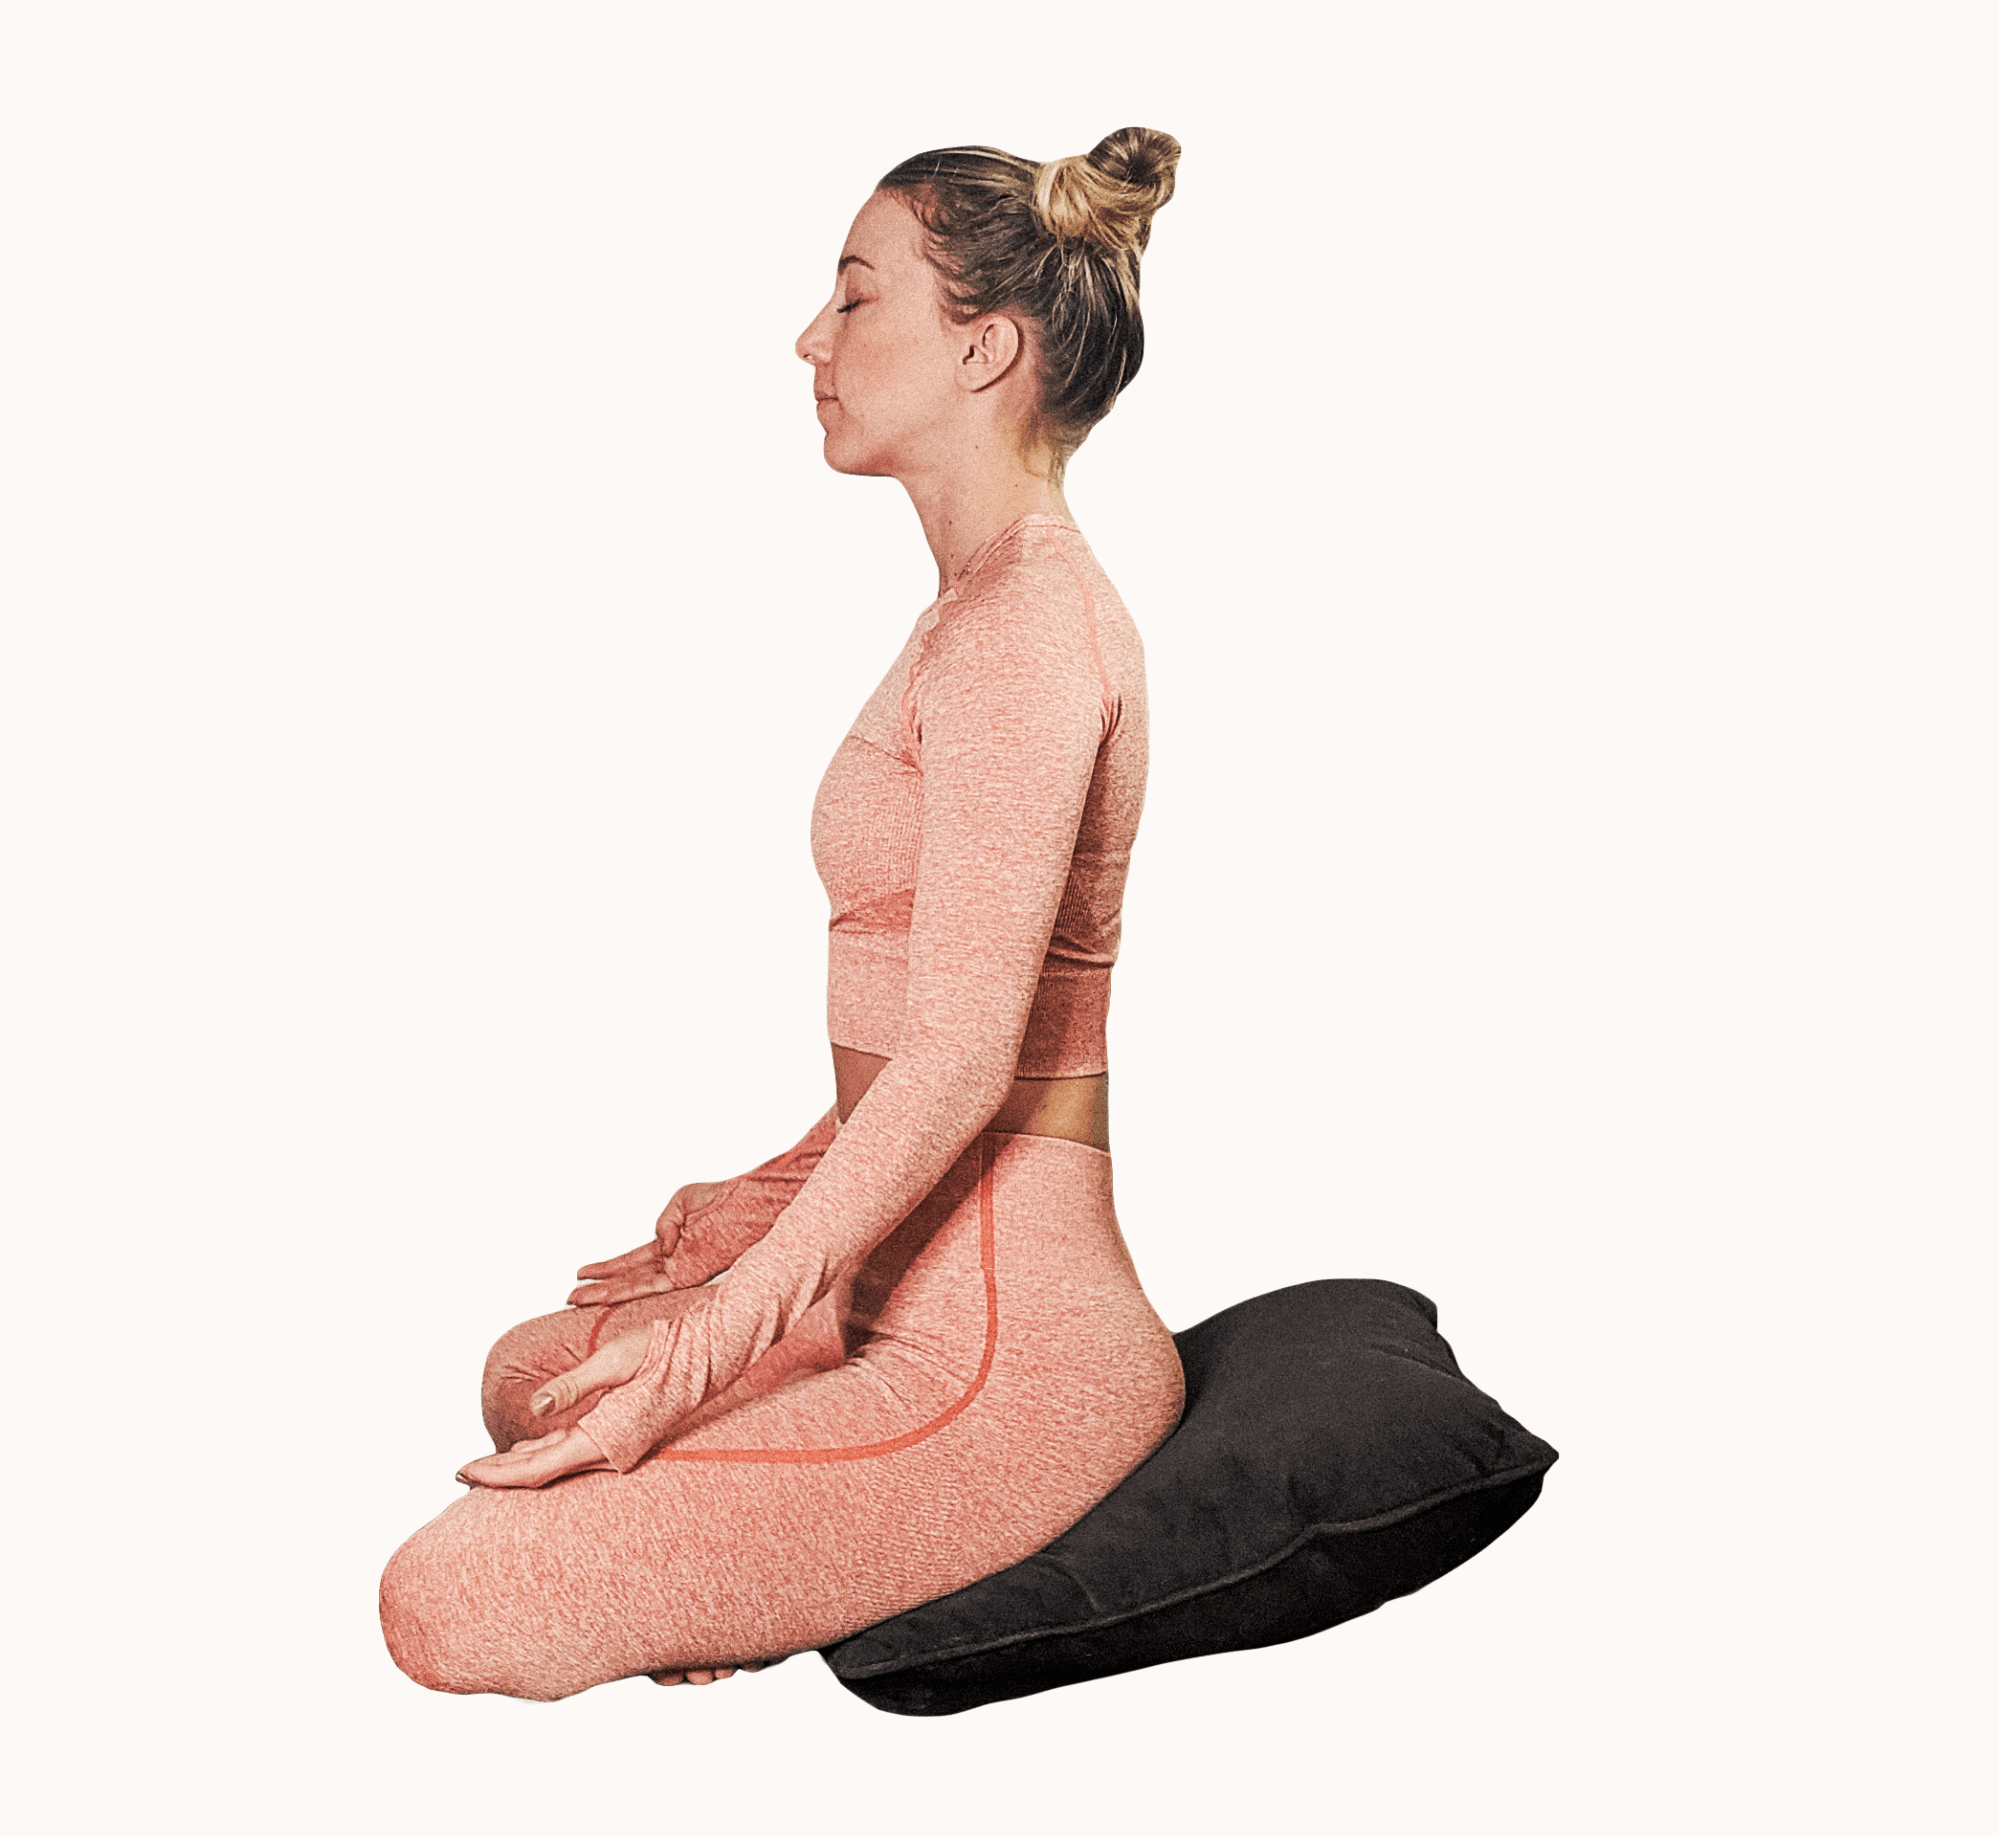 SEATED ON A PILLOW. Sit cross-legged and make sure your hips are elevated on a pillow - ideally allowing your hips to be slightly higher than your knees.